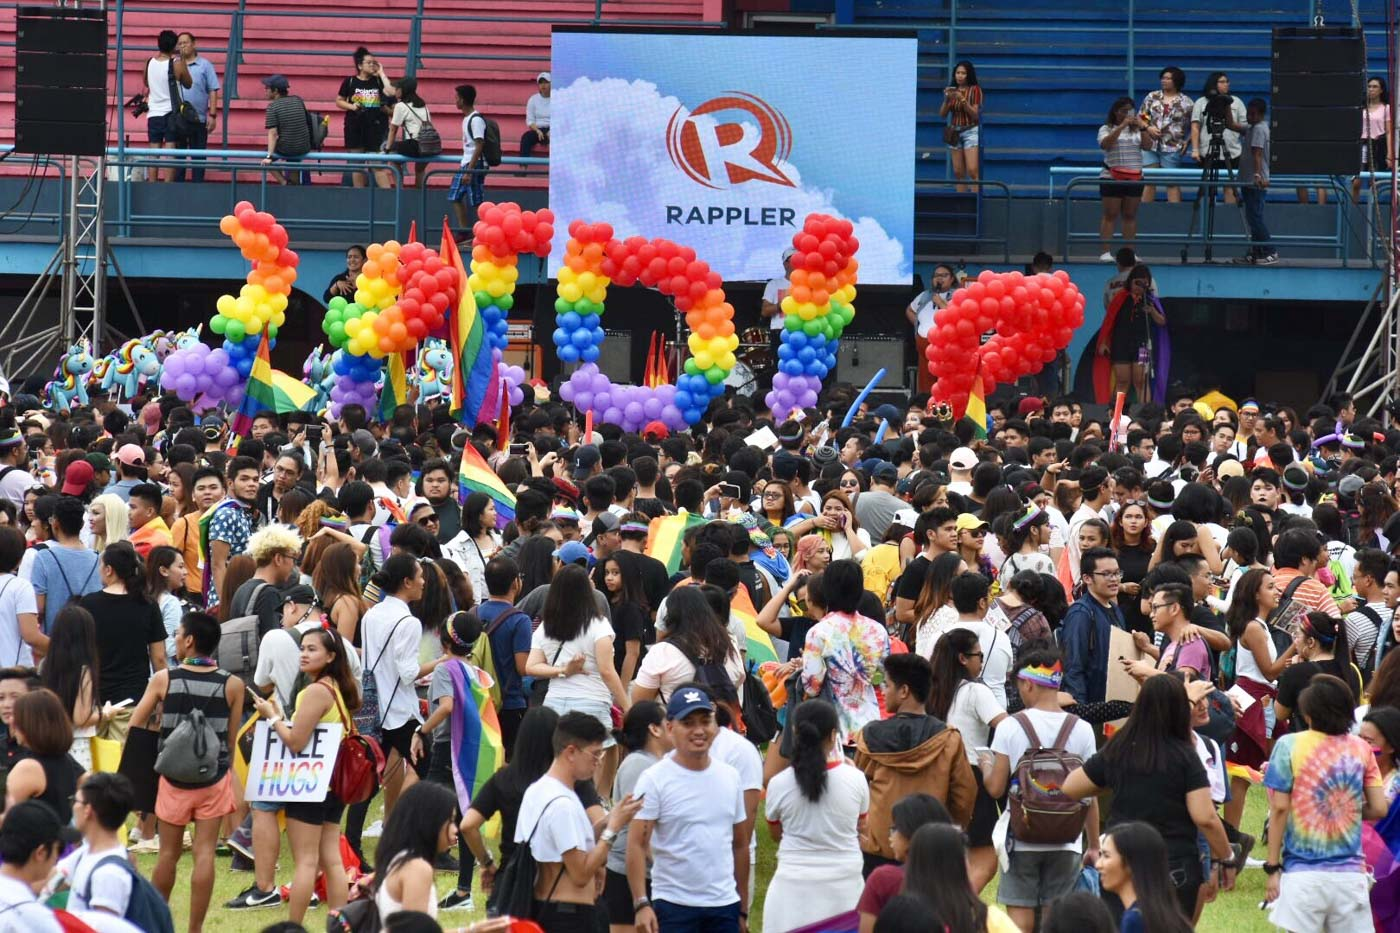 PRIDE MARCH. This year's Pride March draws a crowd of around 25,000 people. Photo by Angie de Silva/Rappler